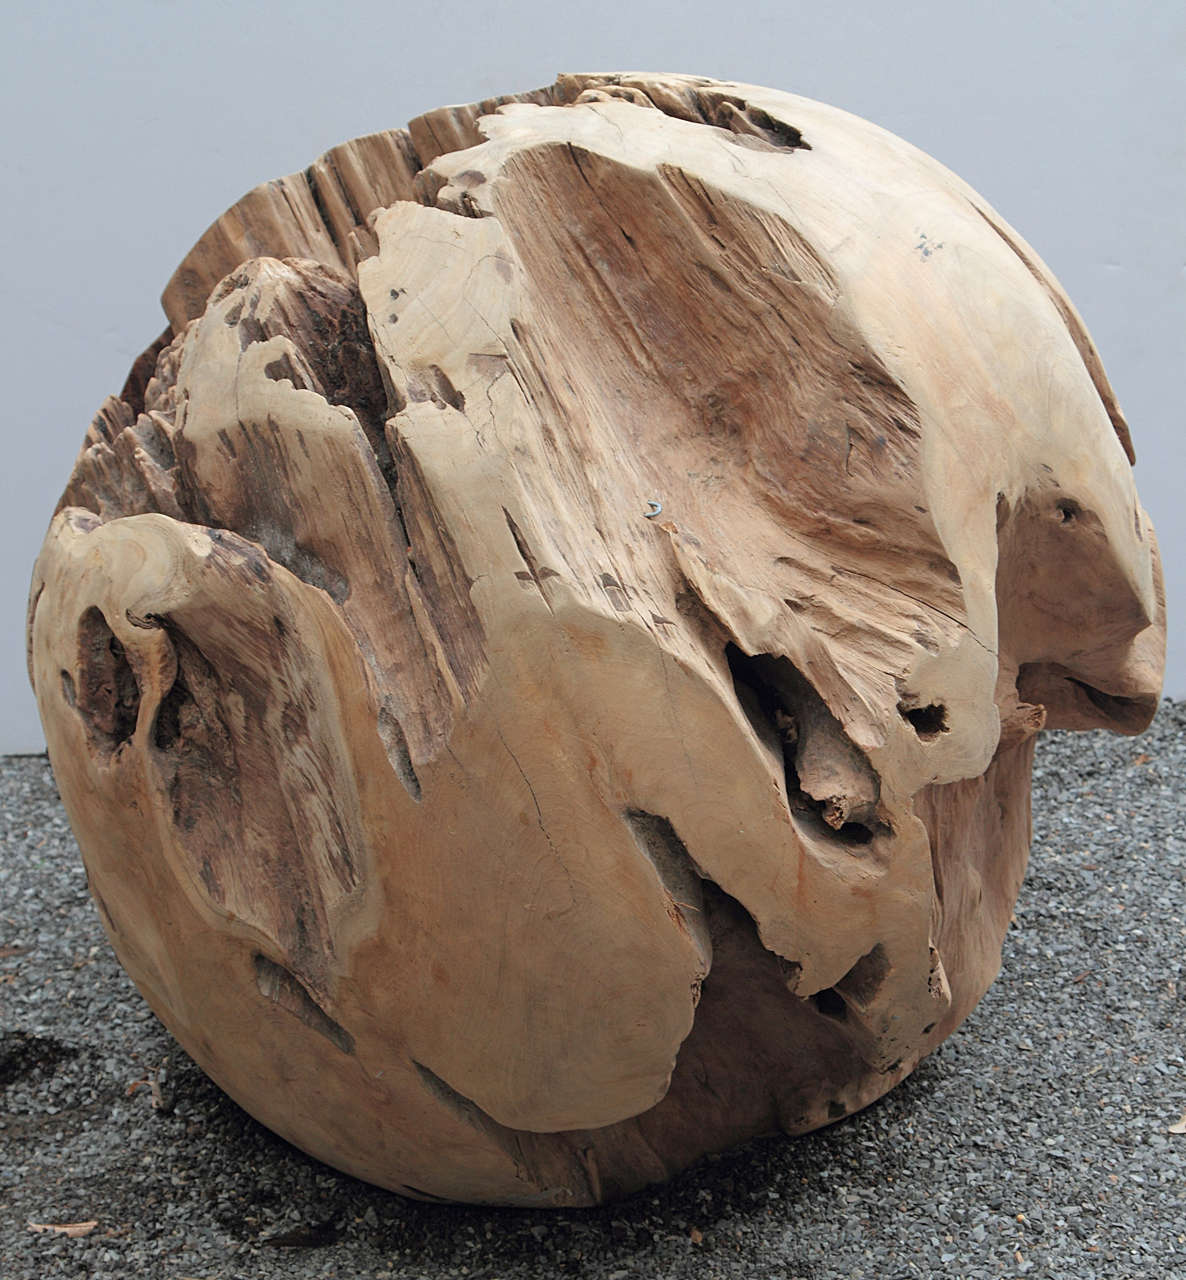 Large Teak Balls For Home Decor Or Garden Accessories At 1stdibs